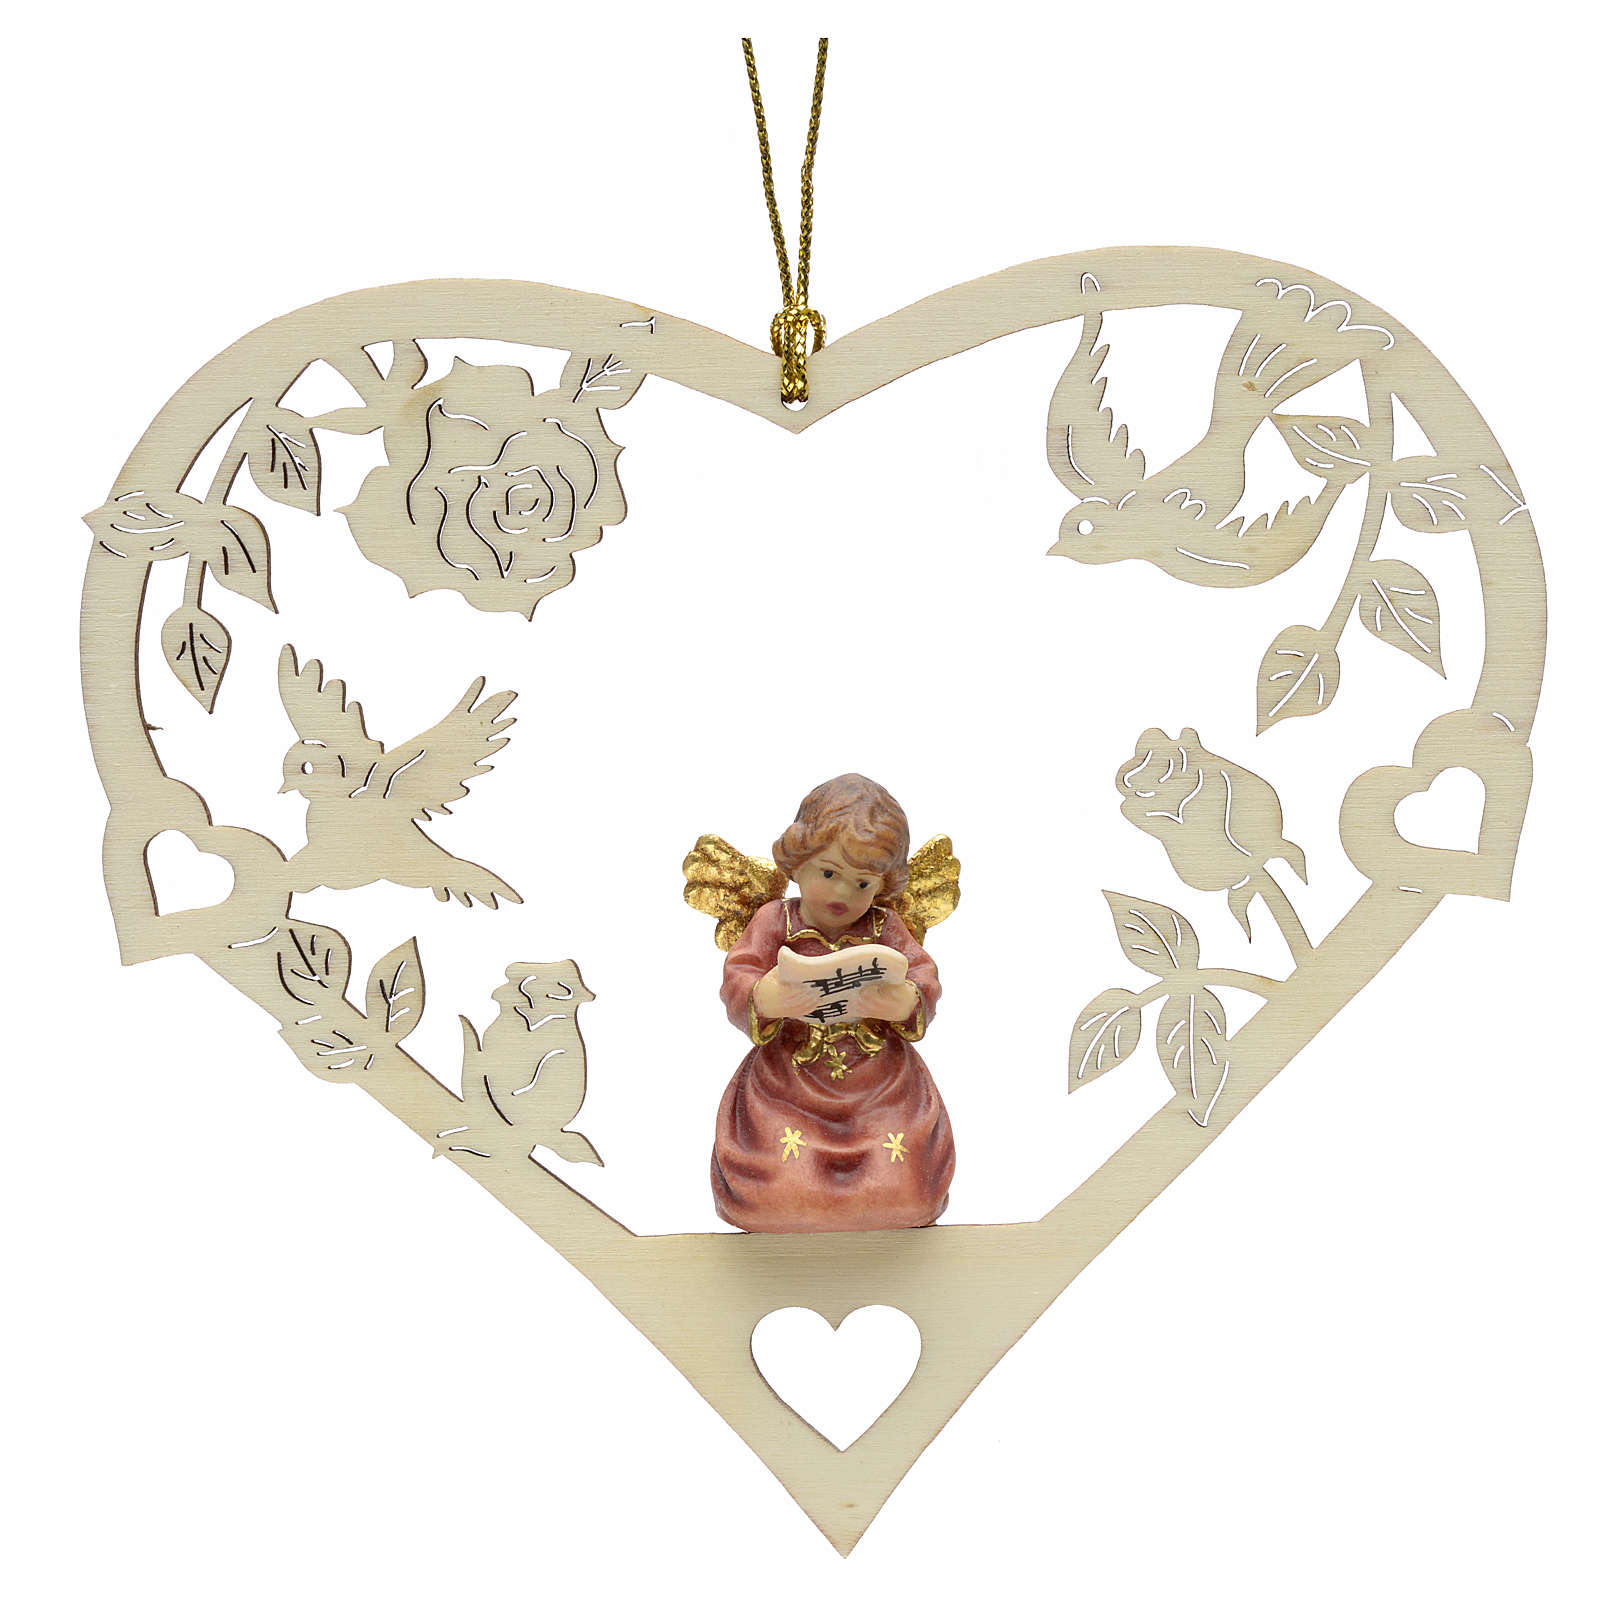 Christmas decor angel with music score on heart 4